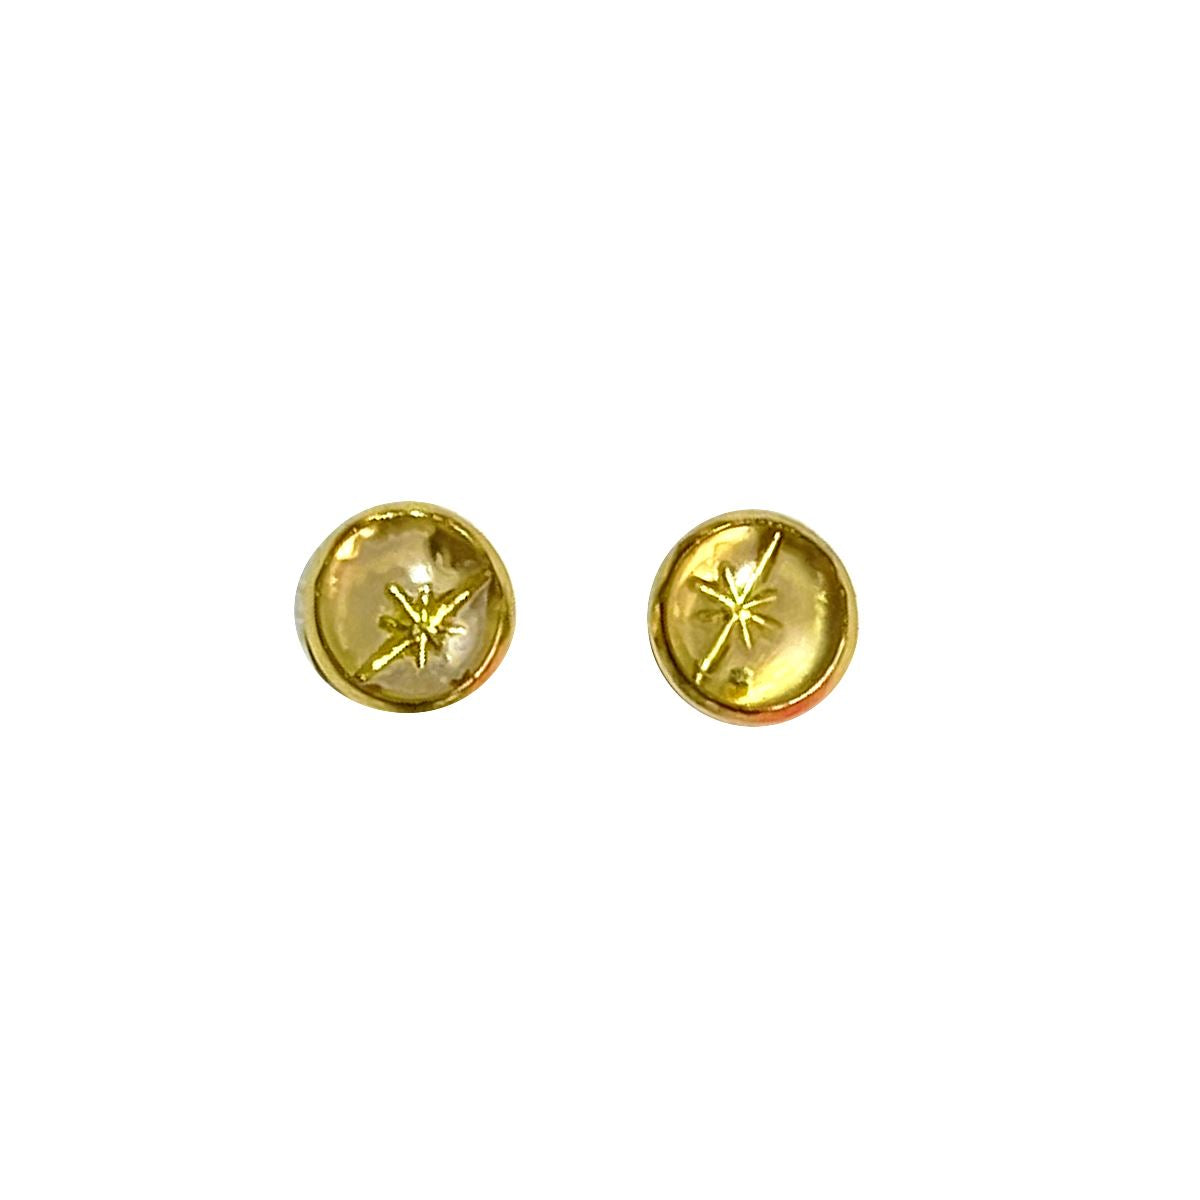 Celestial - starshine gold on gold 8mm stud earrings Deanna Dot Store